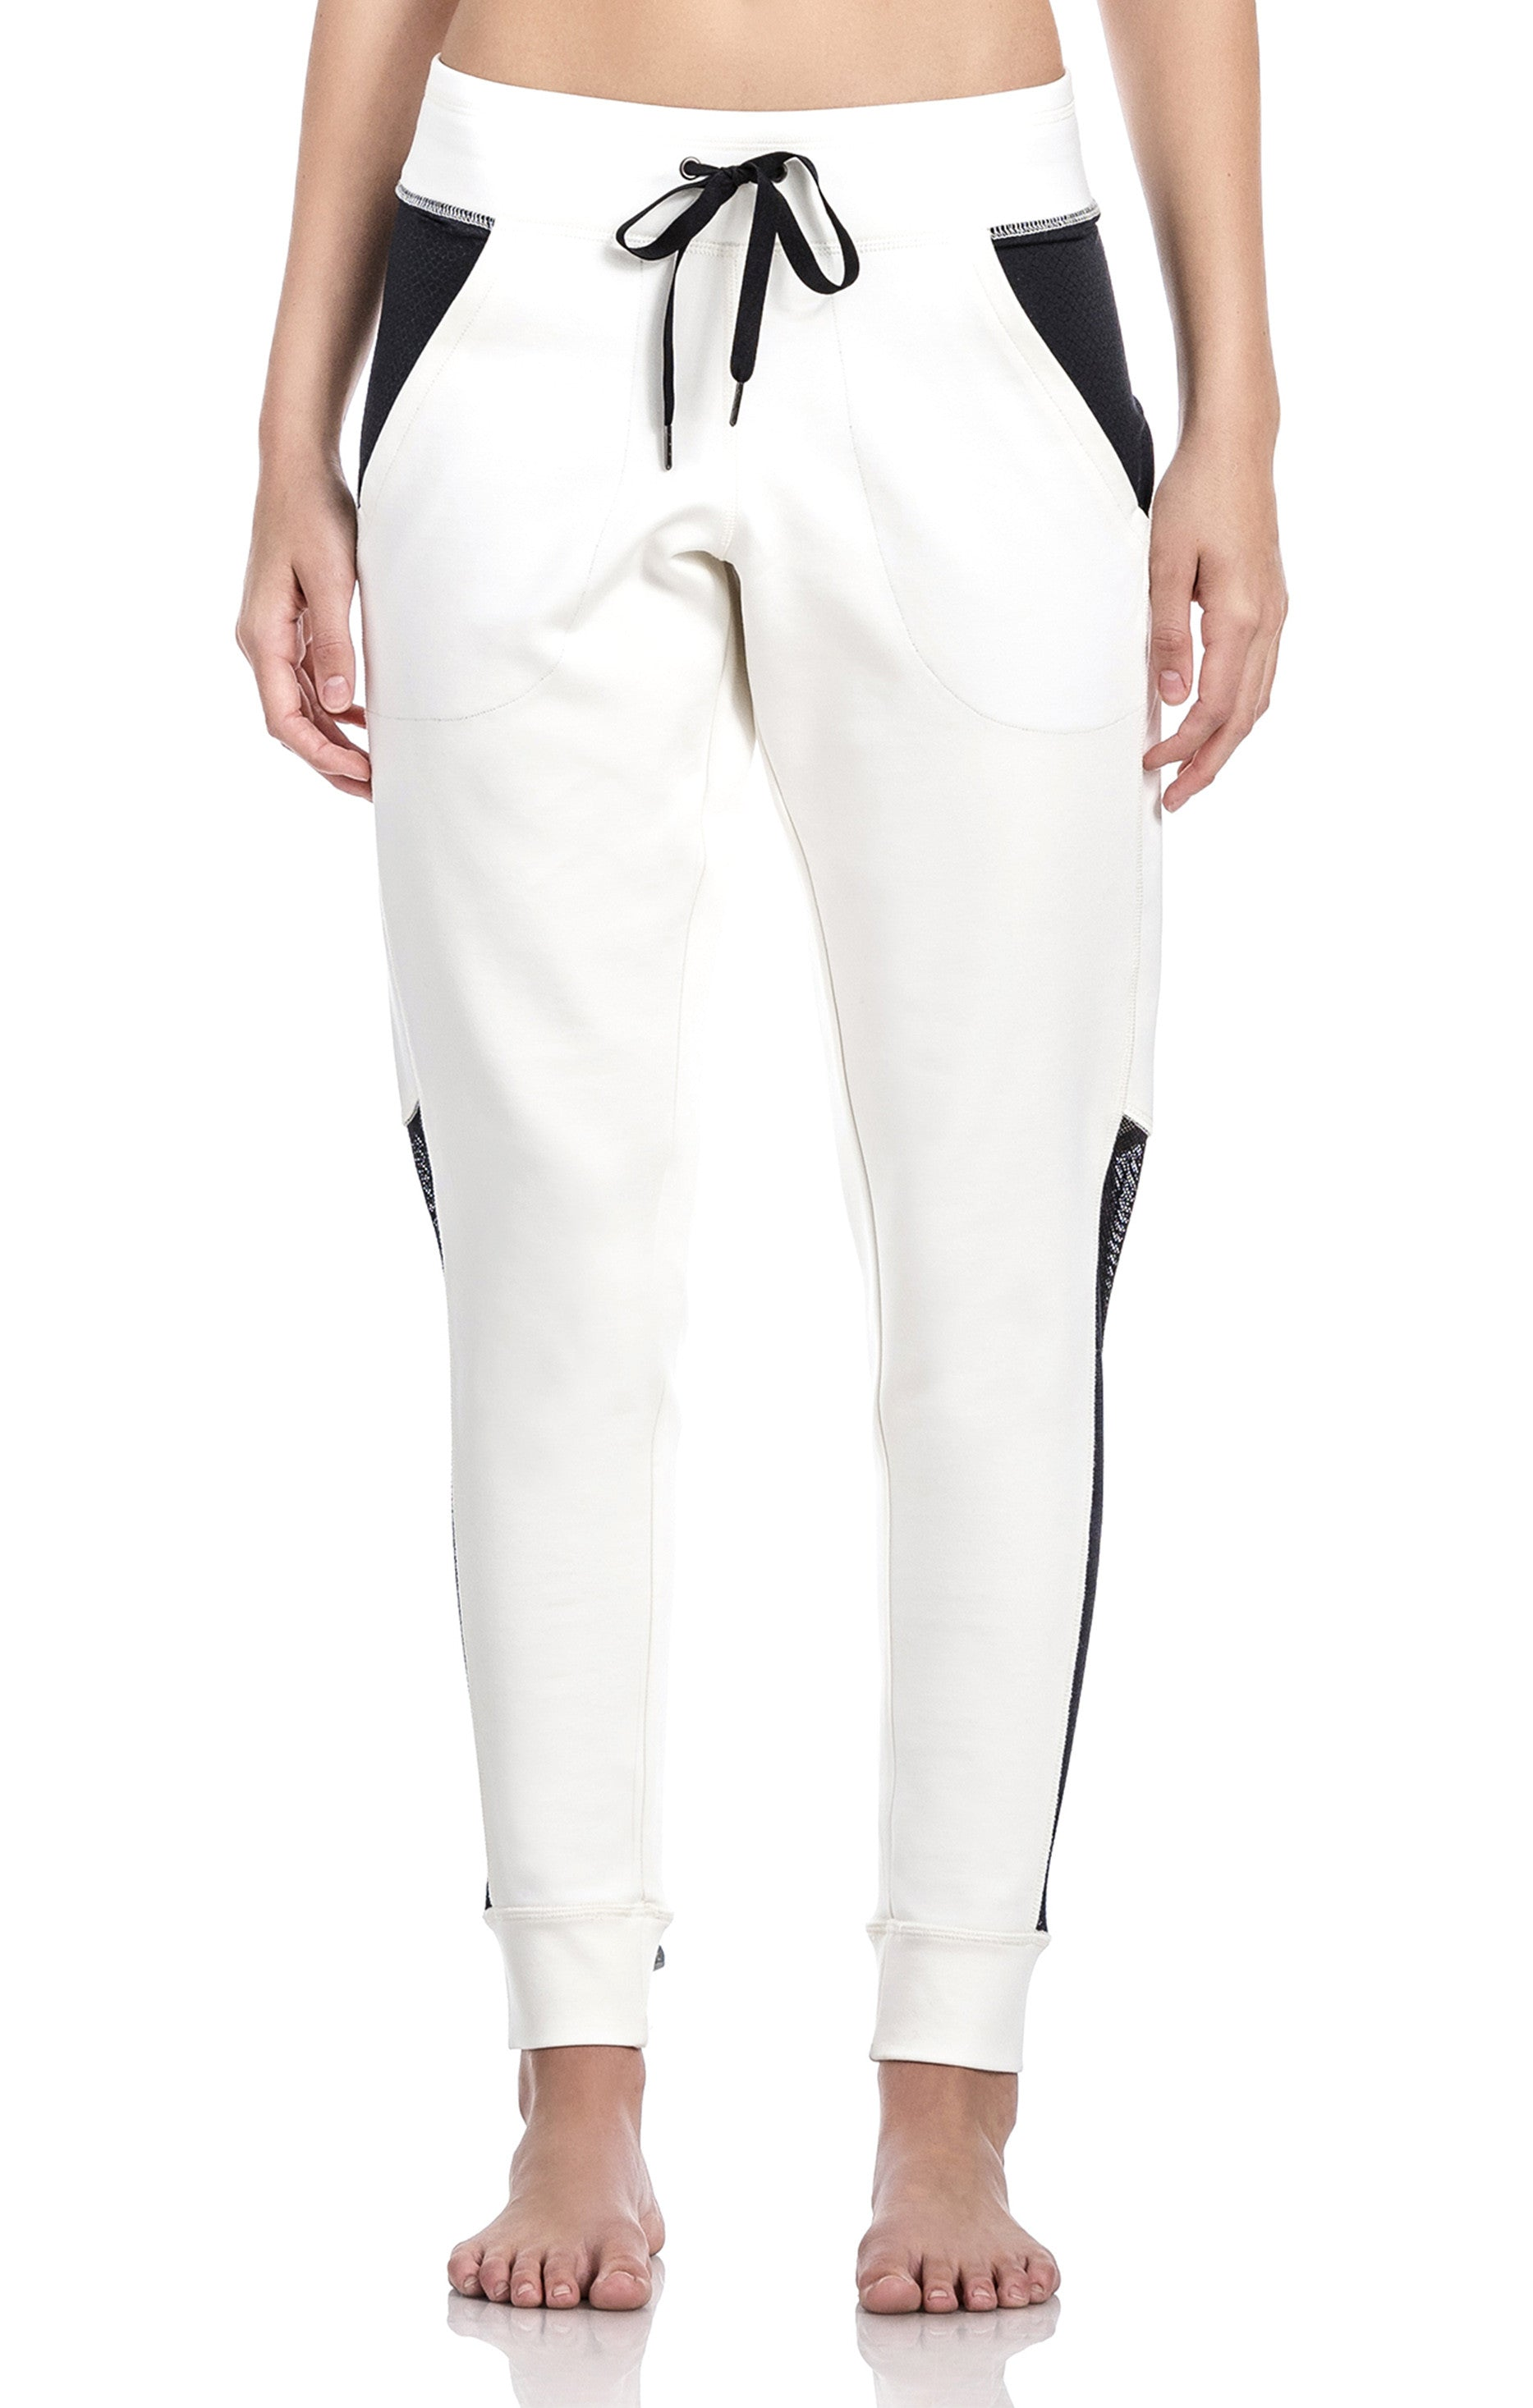 Off White Joggers - Activewear Leggings